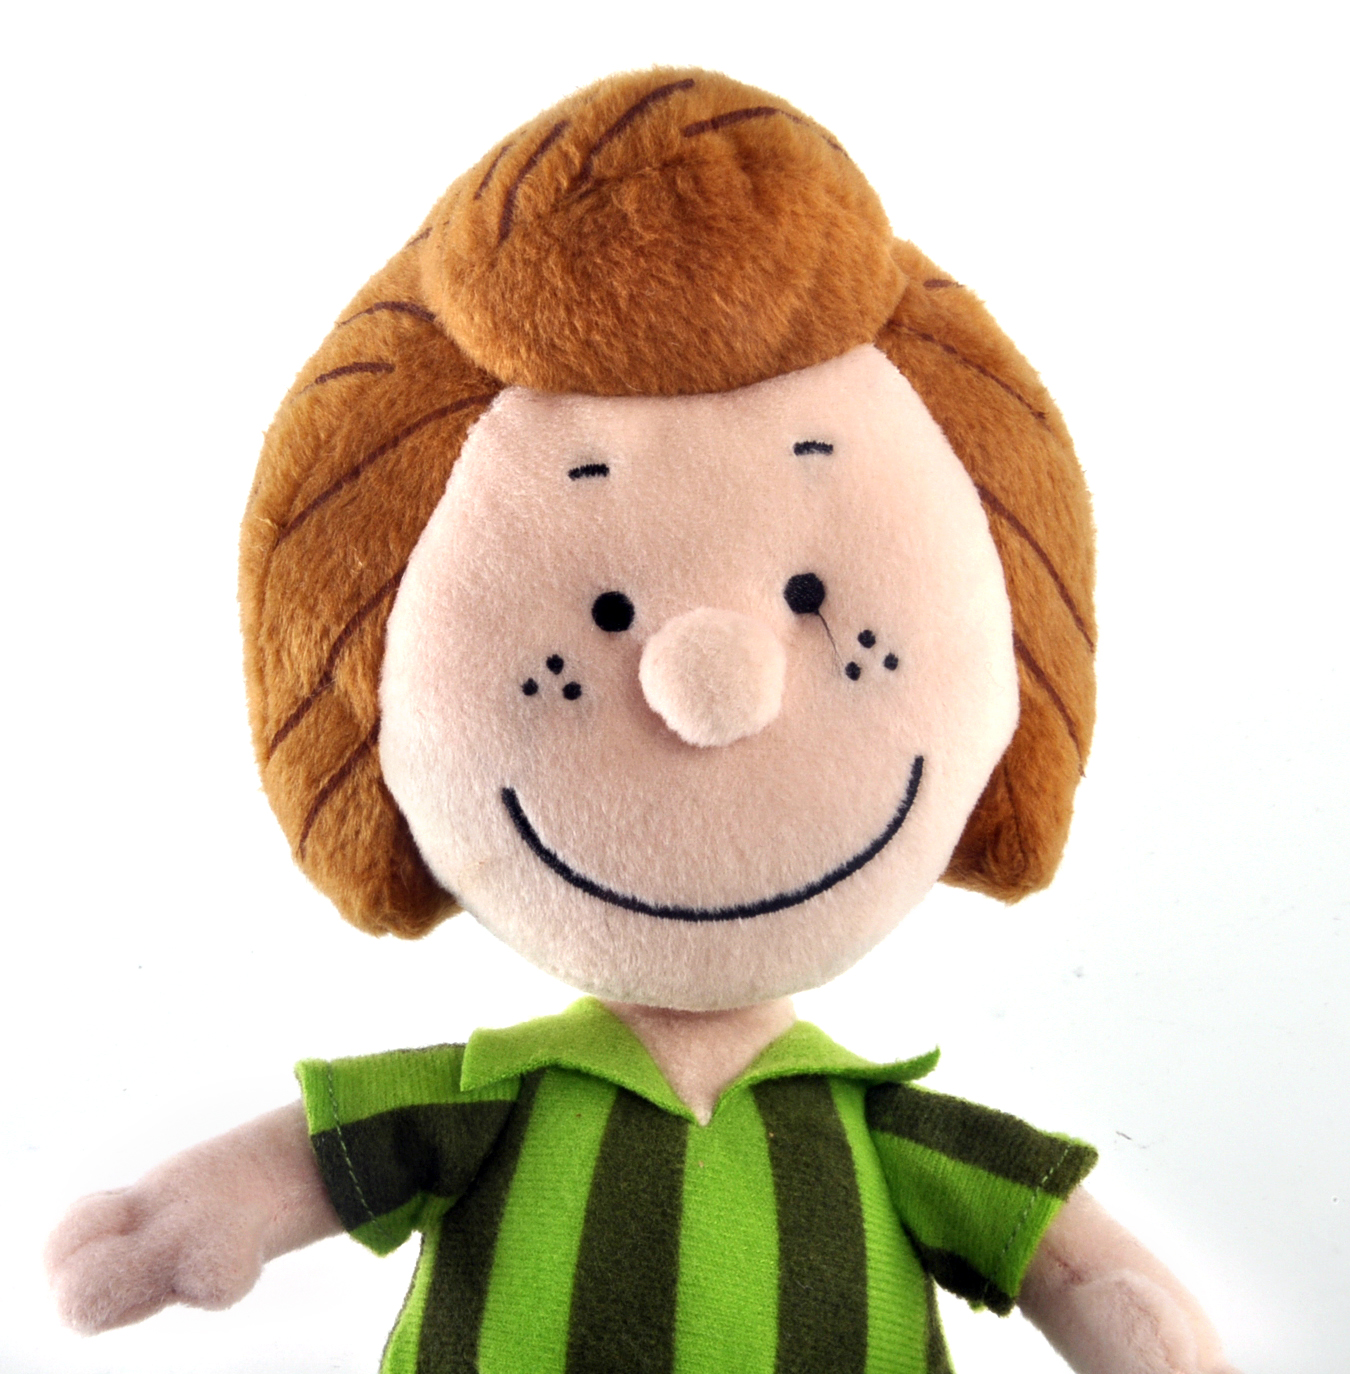 peppermint patty peanuts soft toy 10 of warm happiness pink